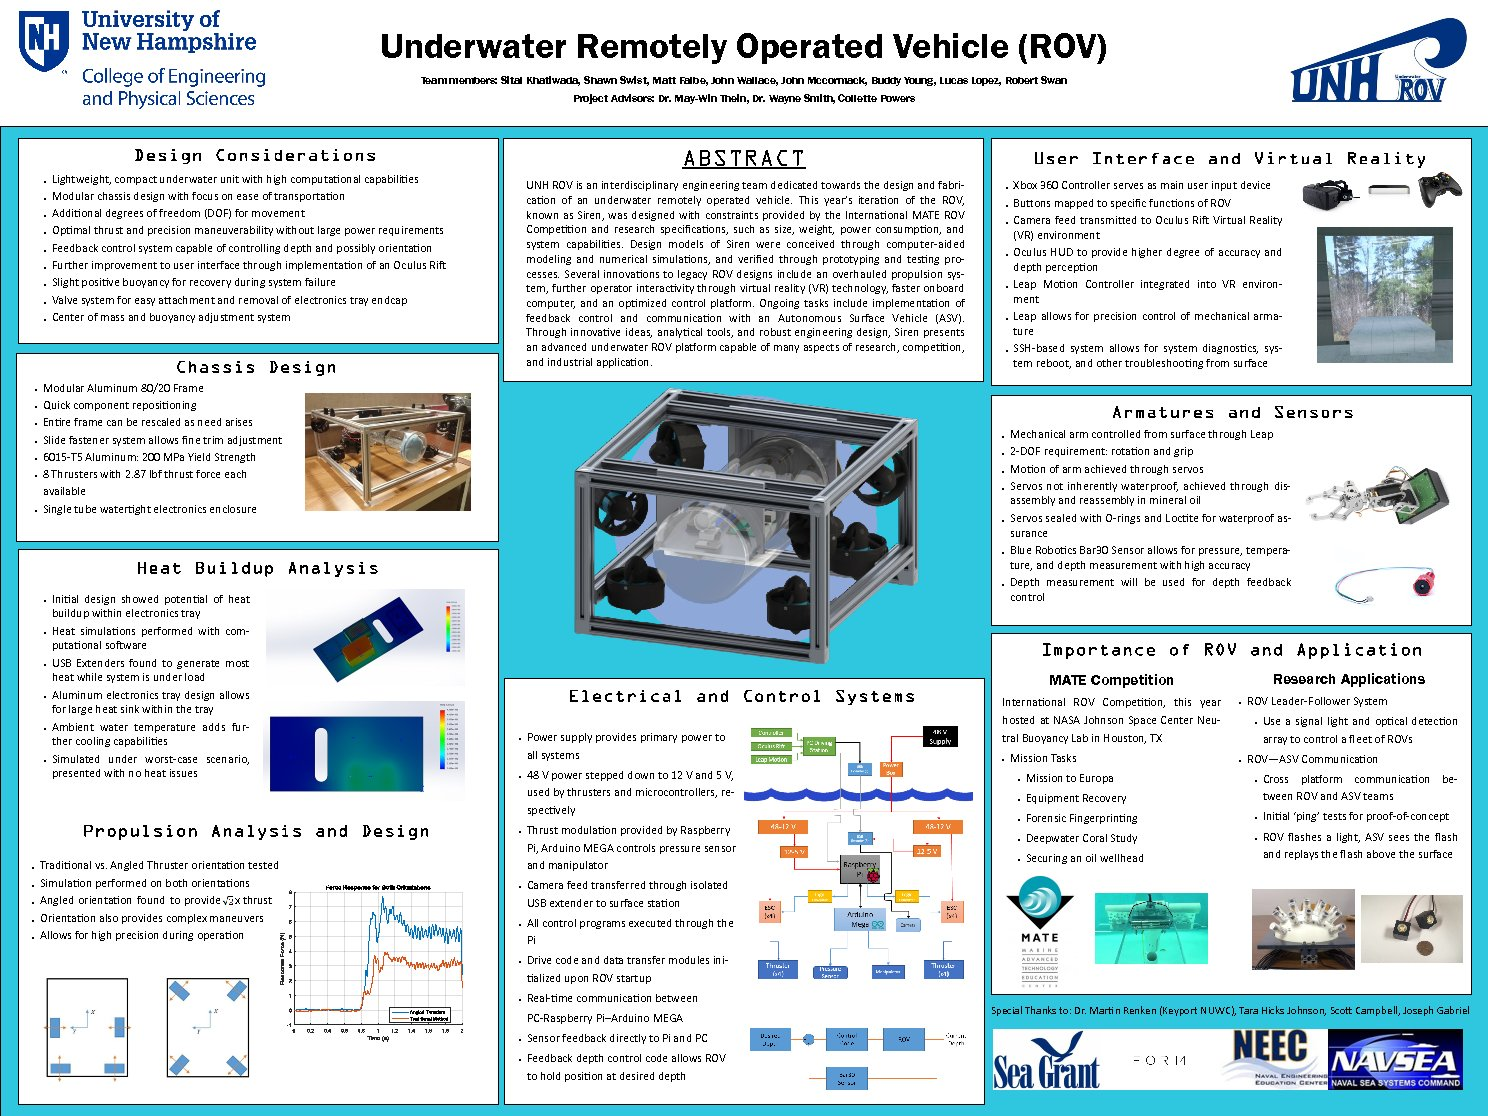 Underwater Remotely Operated Vehicle by unhrov